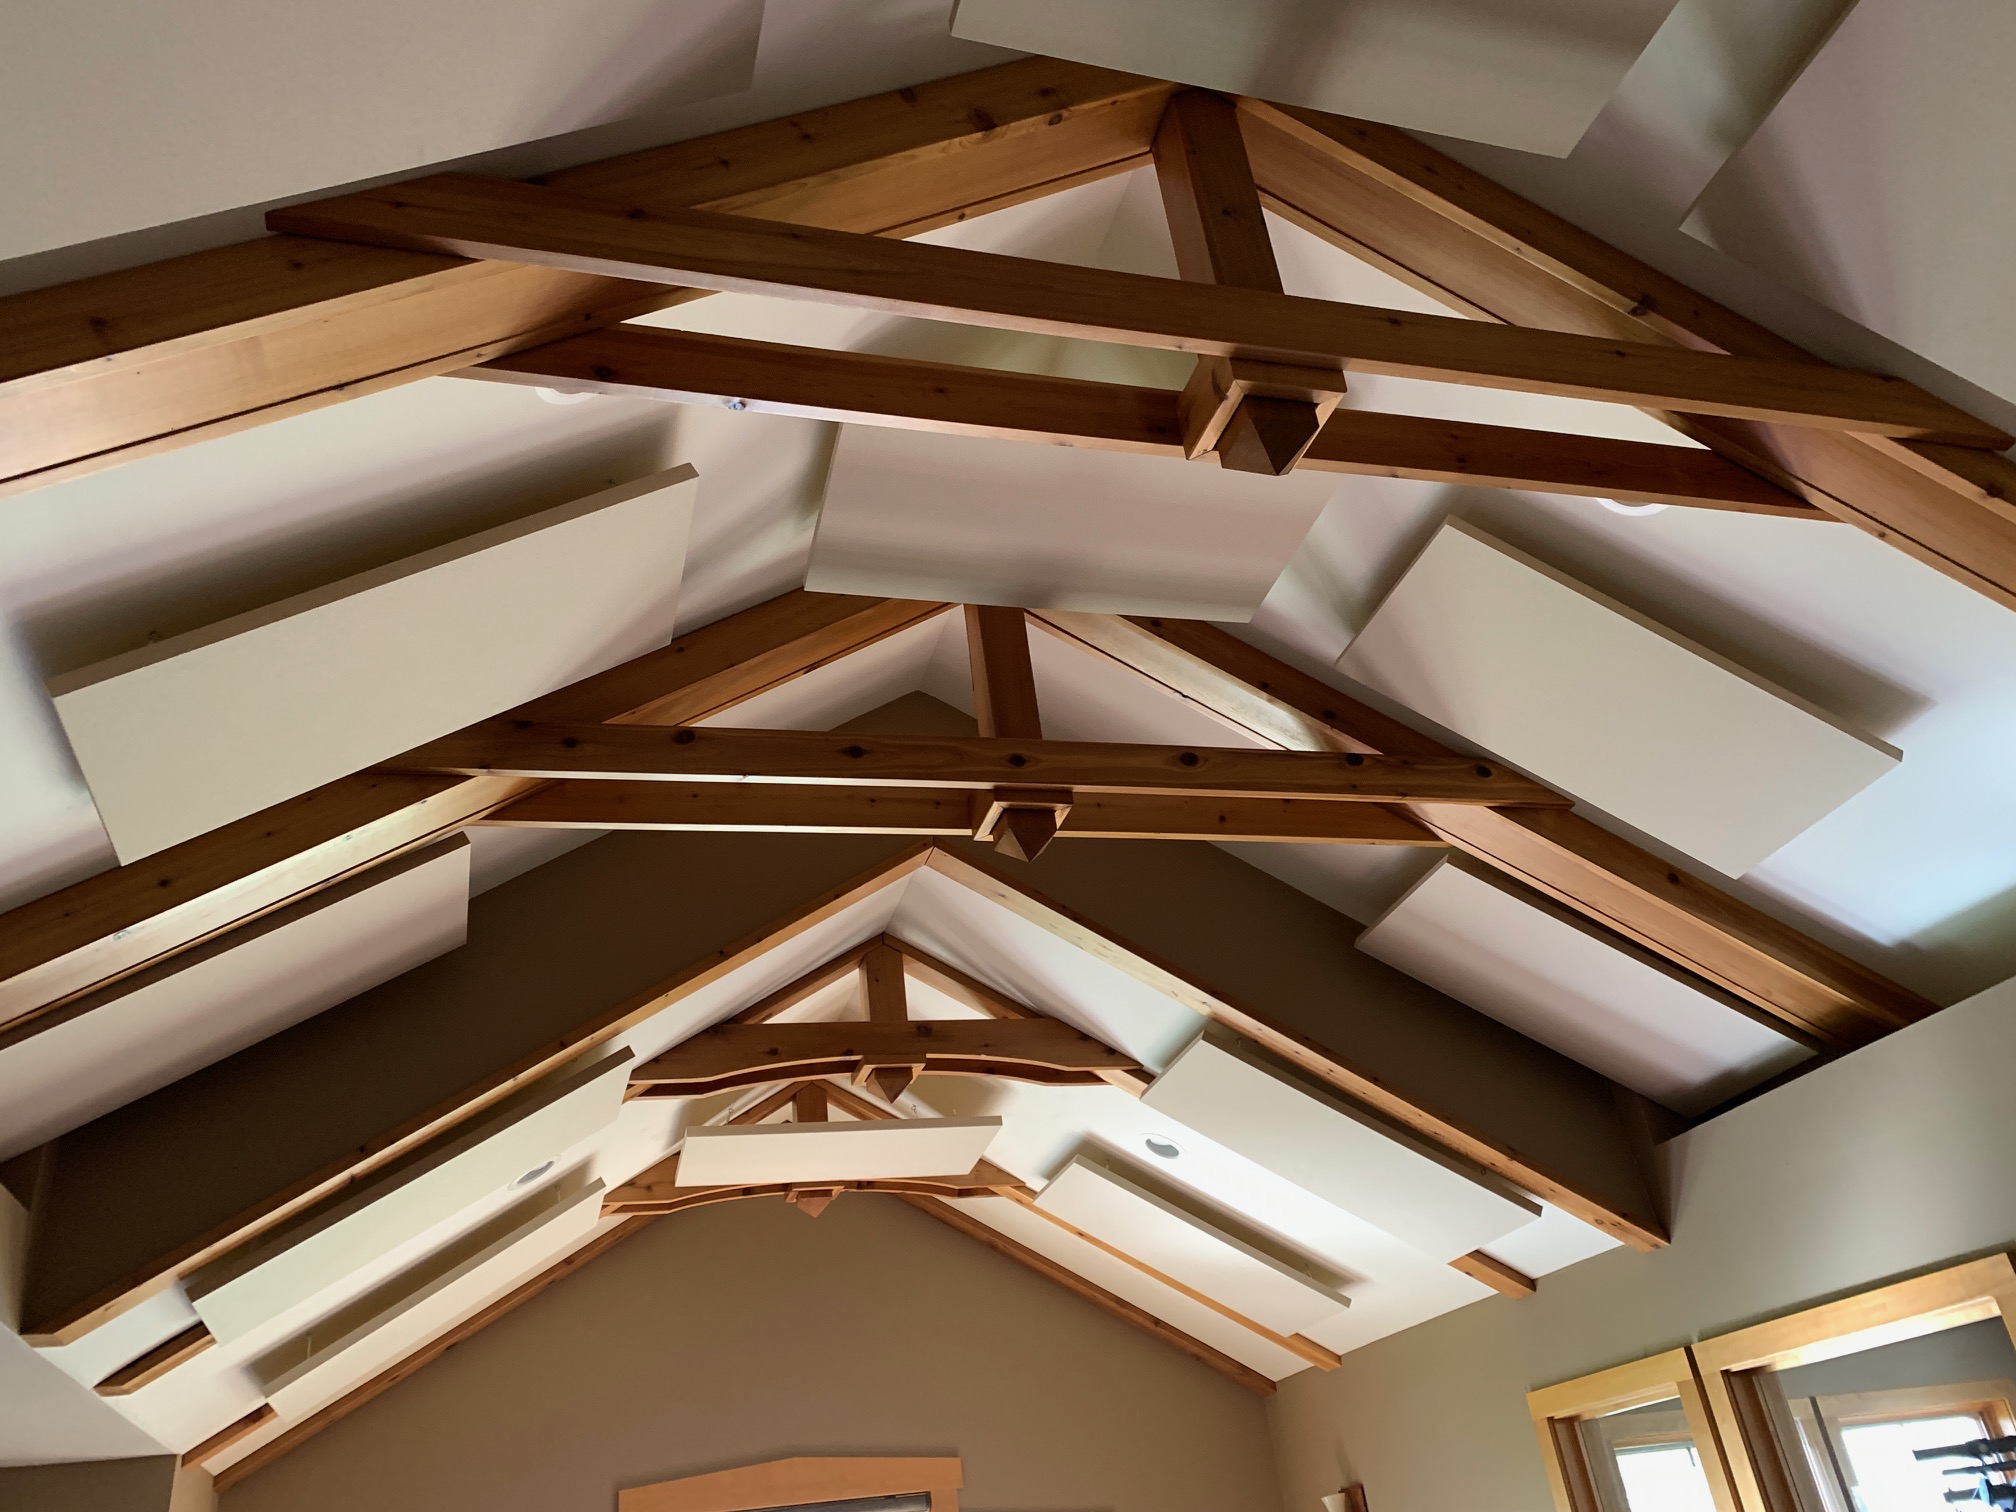 Primacoustic Nimbus acoustic ceiling clouds in a high arch ceiling